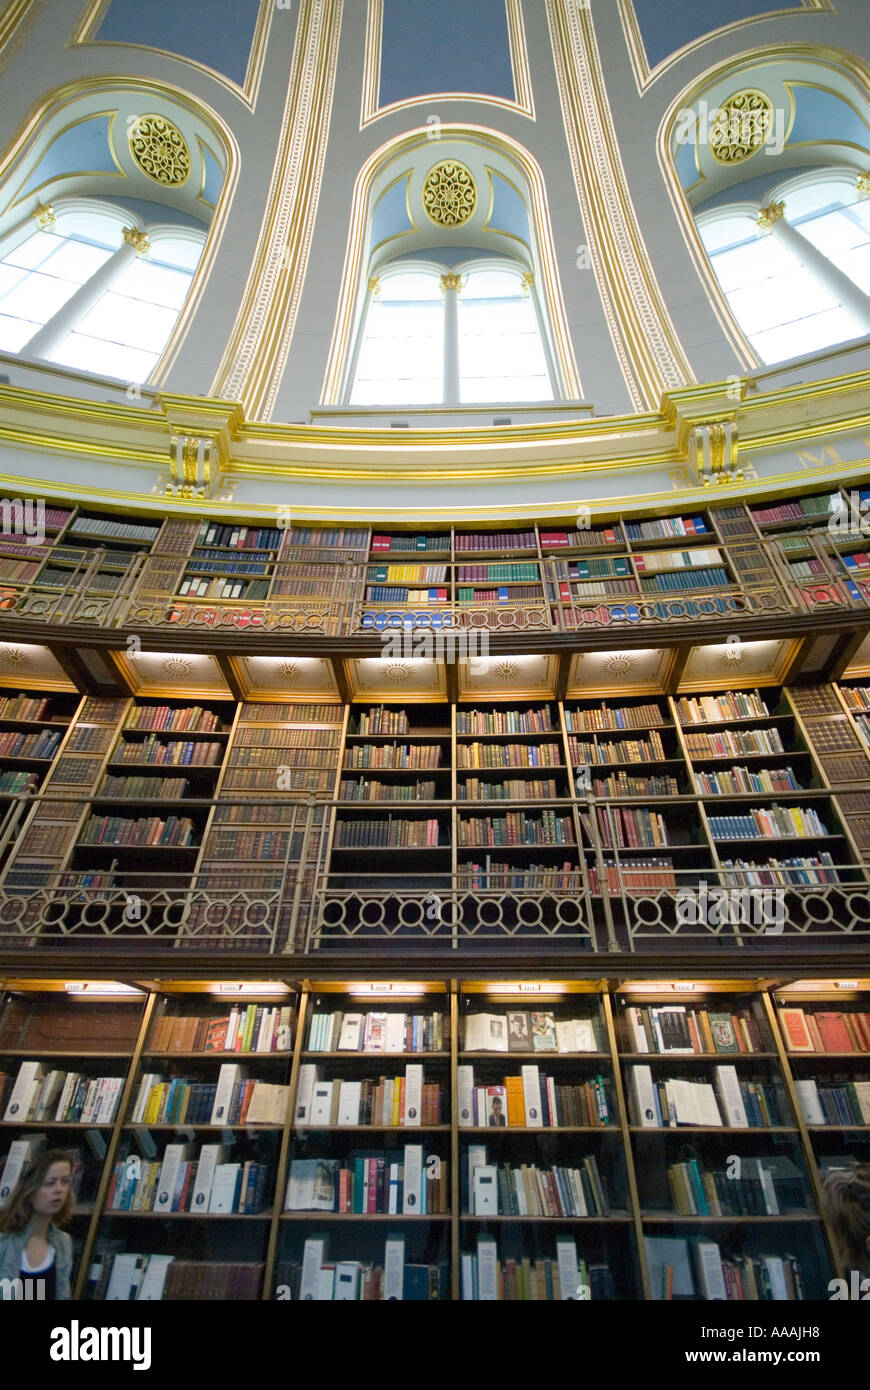 Book shelves at the British museum Library reading room London England - Stock Image